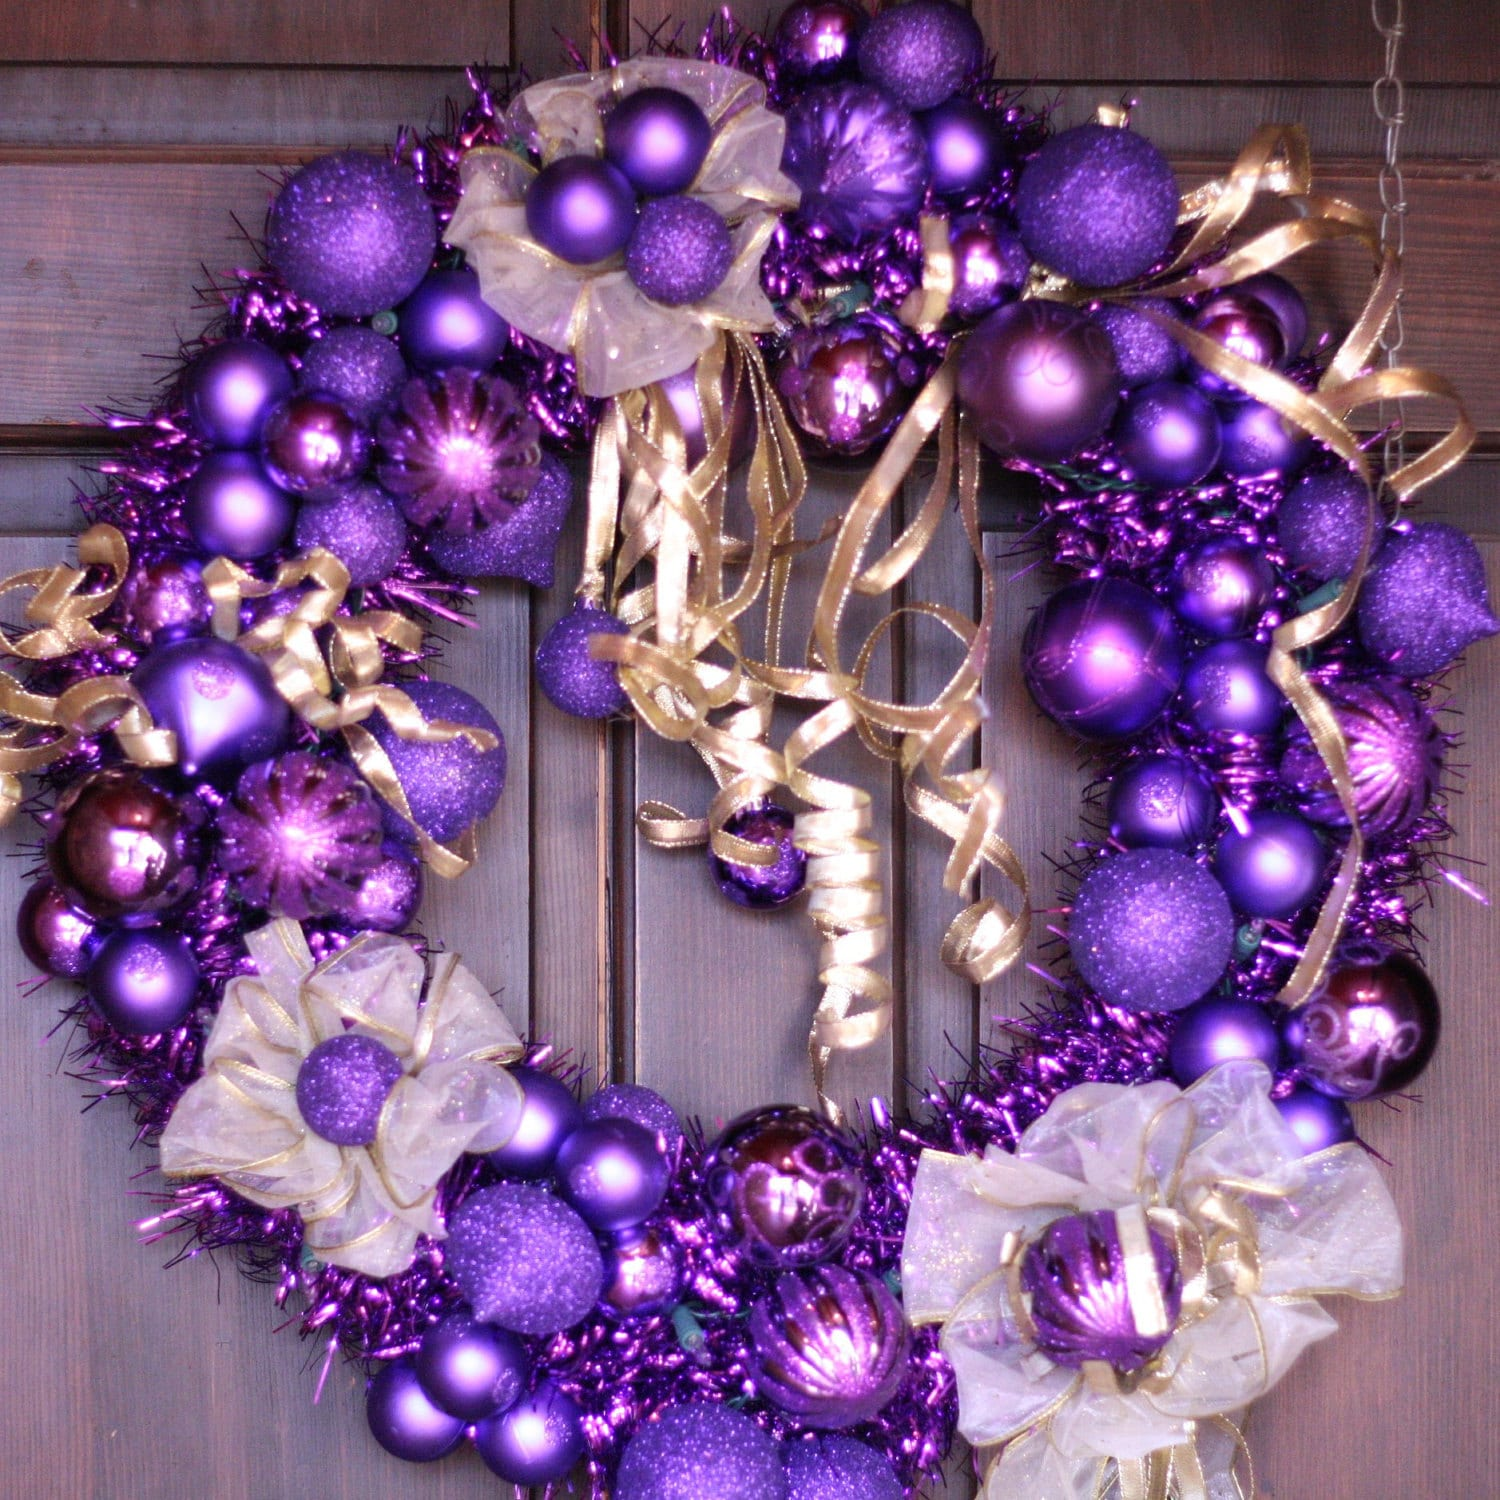 Christmas Decorations In Purple: Purple And Gold Christmas Wreath With White Lights Holiday